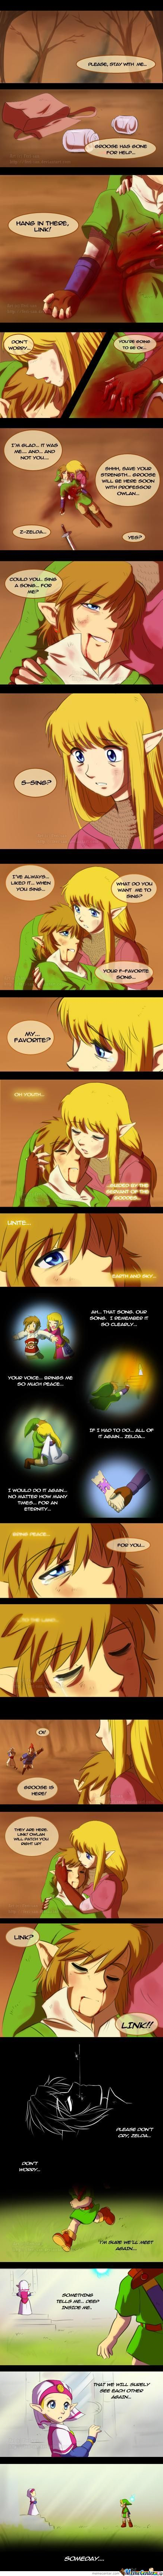 The End Of Link